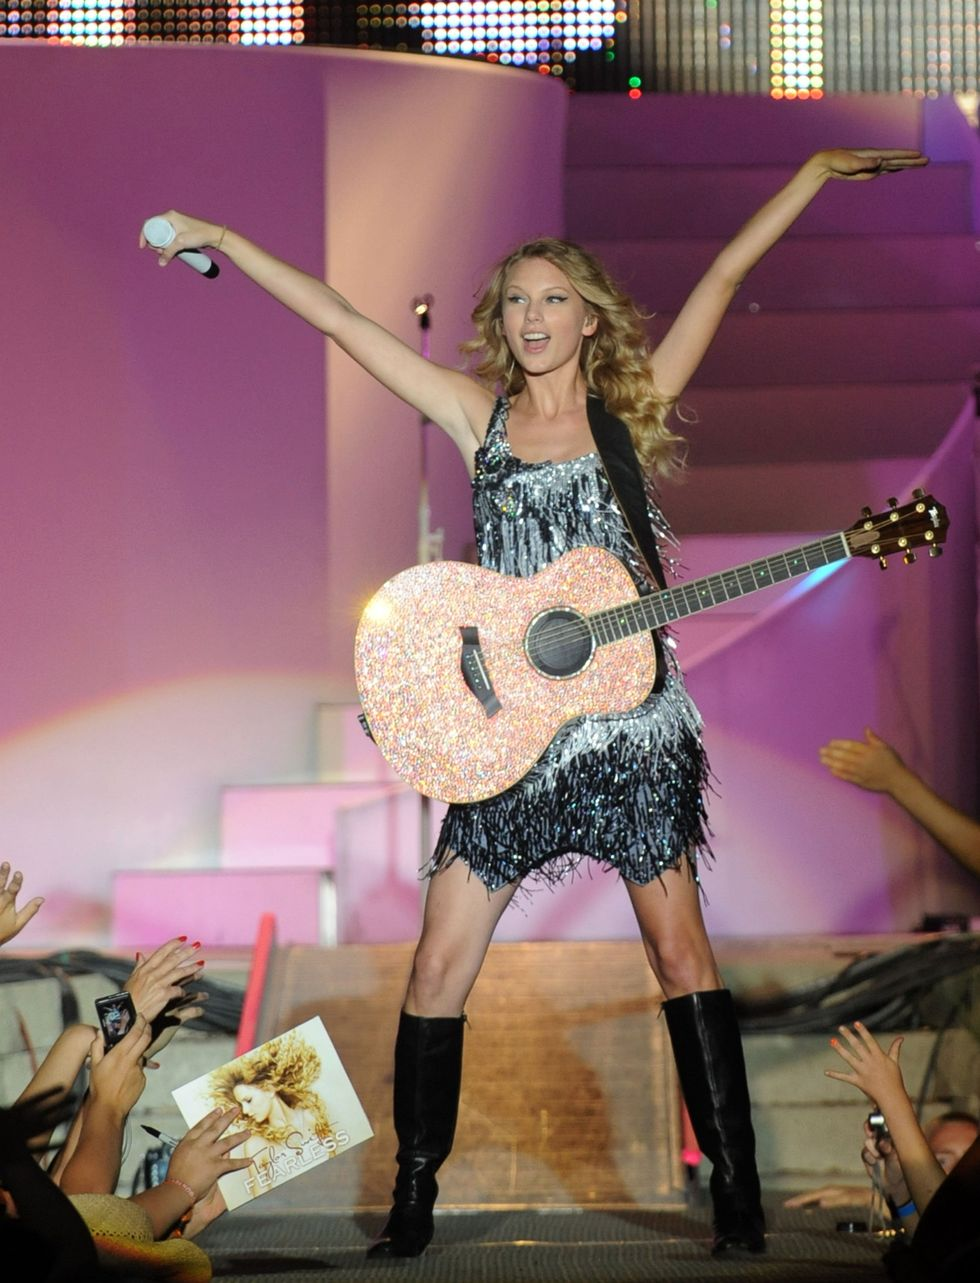 taylor-swift-performs-at-the-17th-annual-country-thunder-usa-music-festival-01